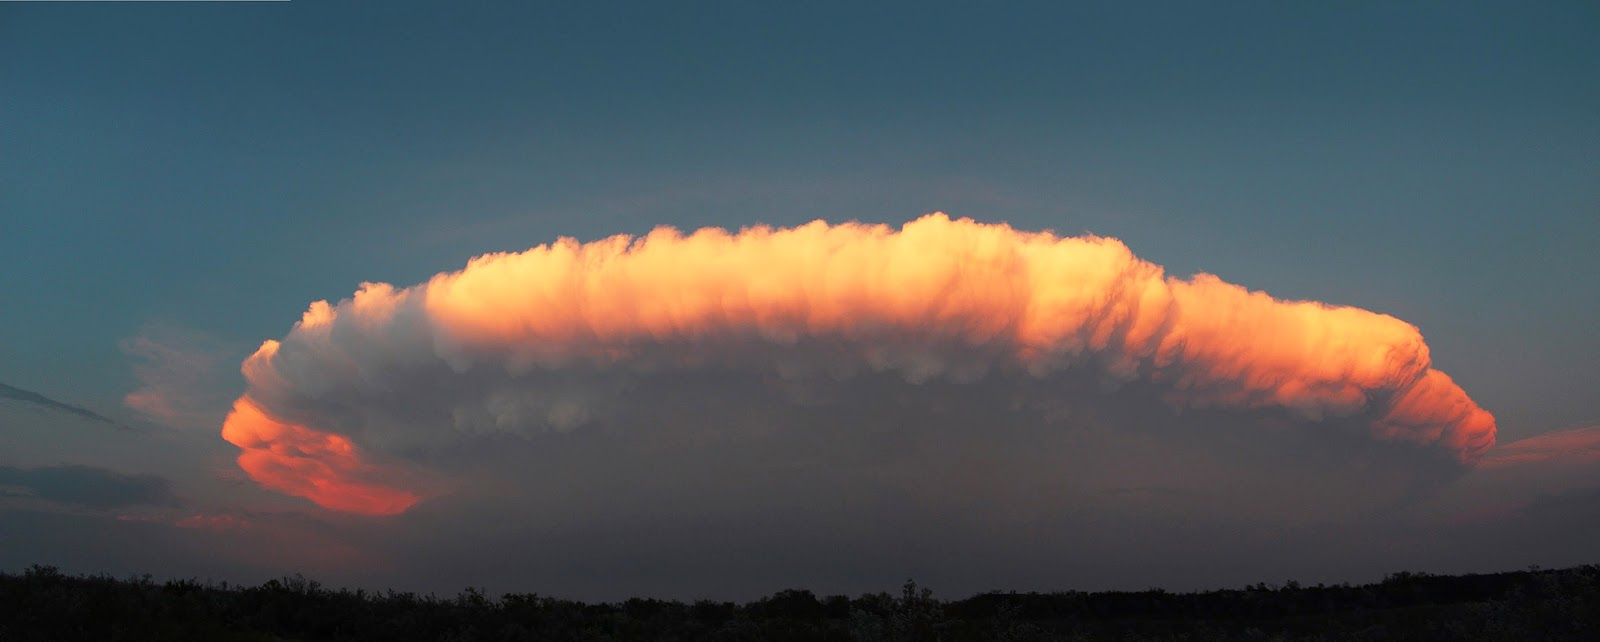 Cumulonimbus Cloud over Texas Cumulonimbus Cloud over Texas   A little later, as the sunset, the storm looks quite different. This kind of complete view of a thunderstorm cloud is typical of the US Great Plains.  Texas, United States May, 2012  Image Credit & Copyright: Kay Cunninghan